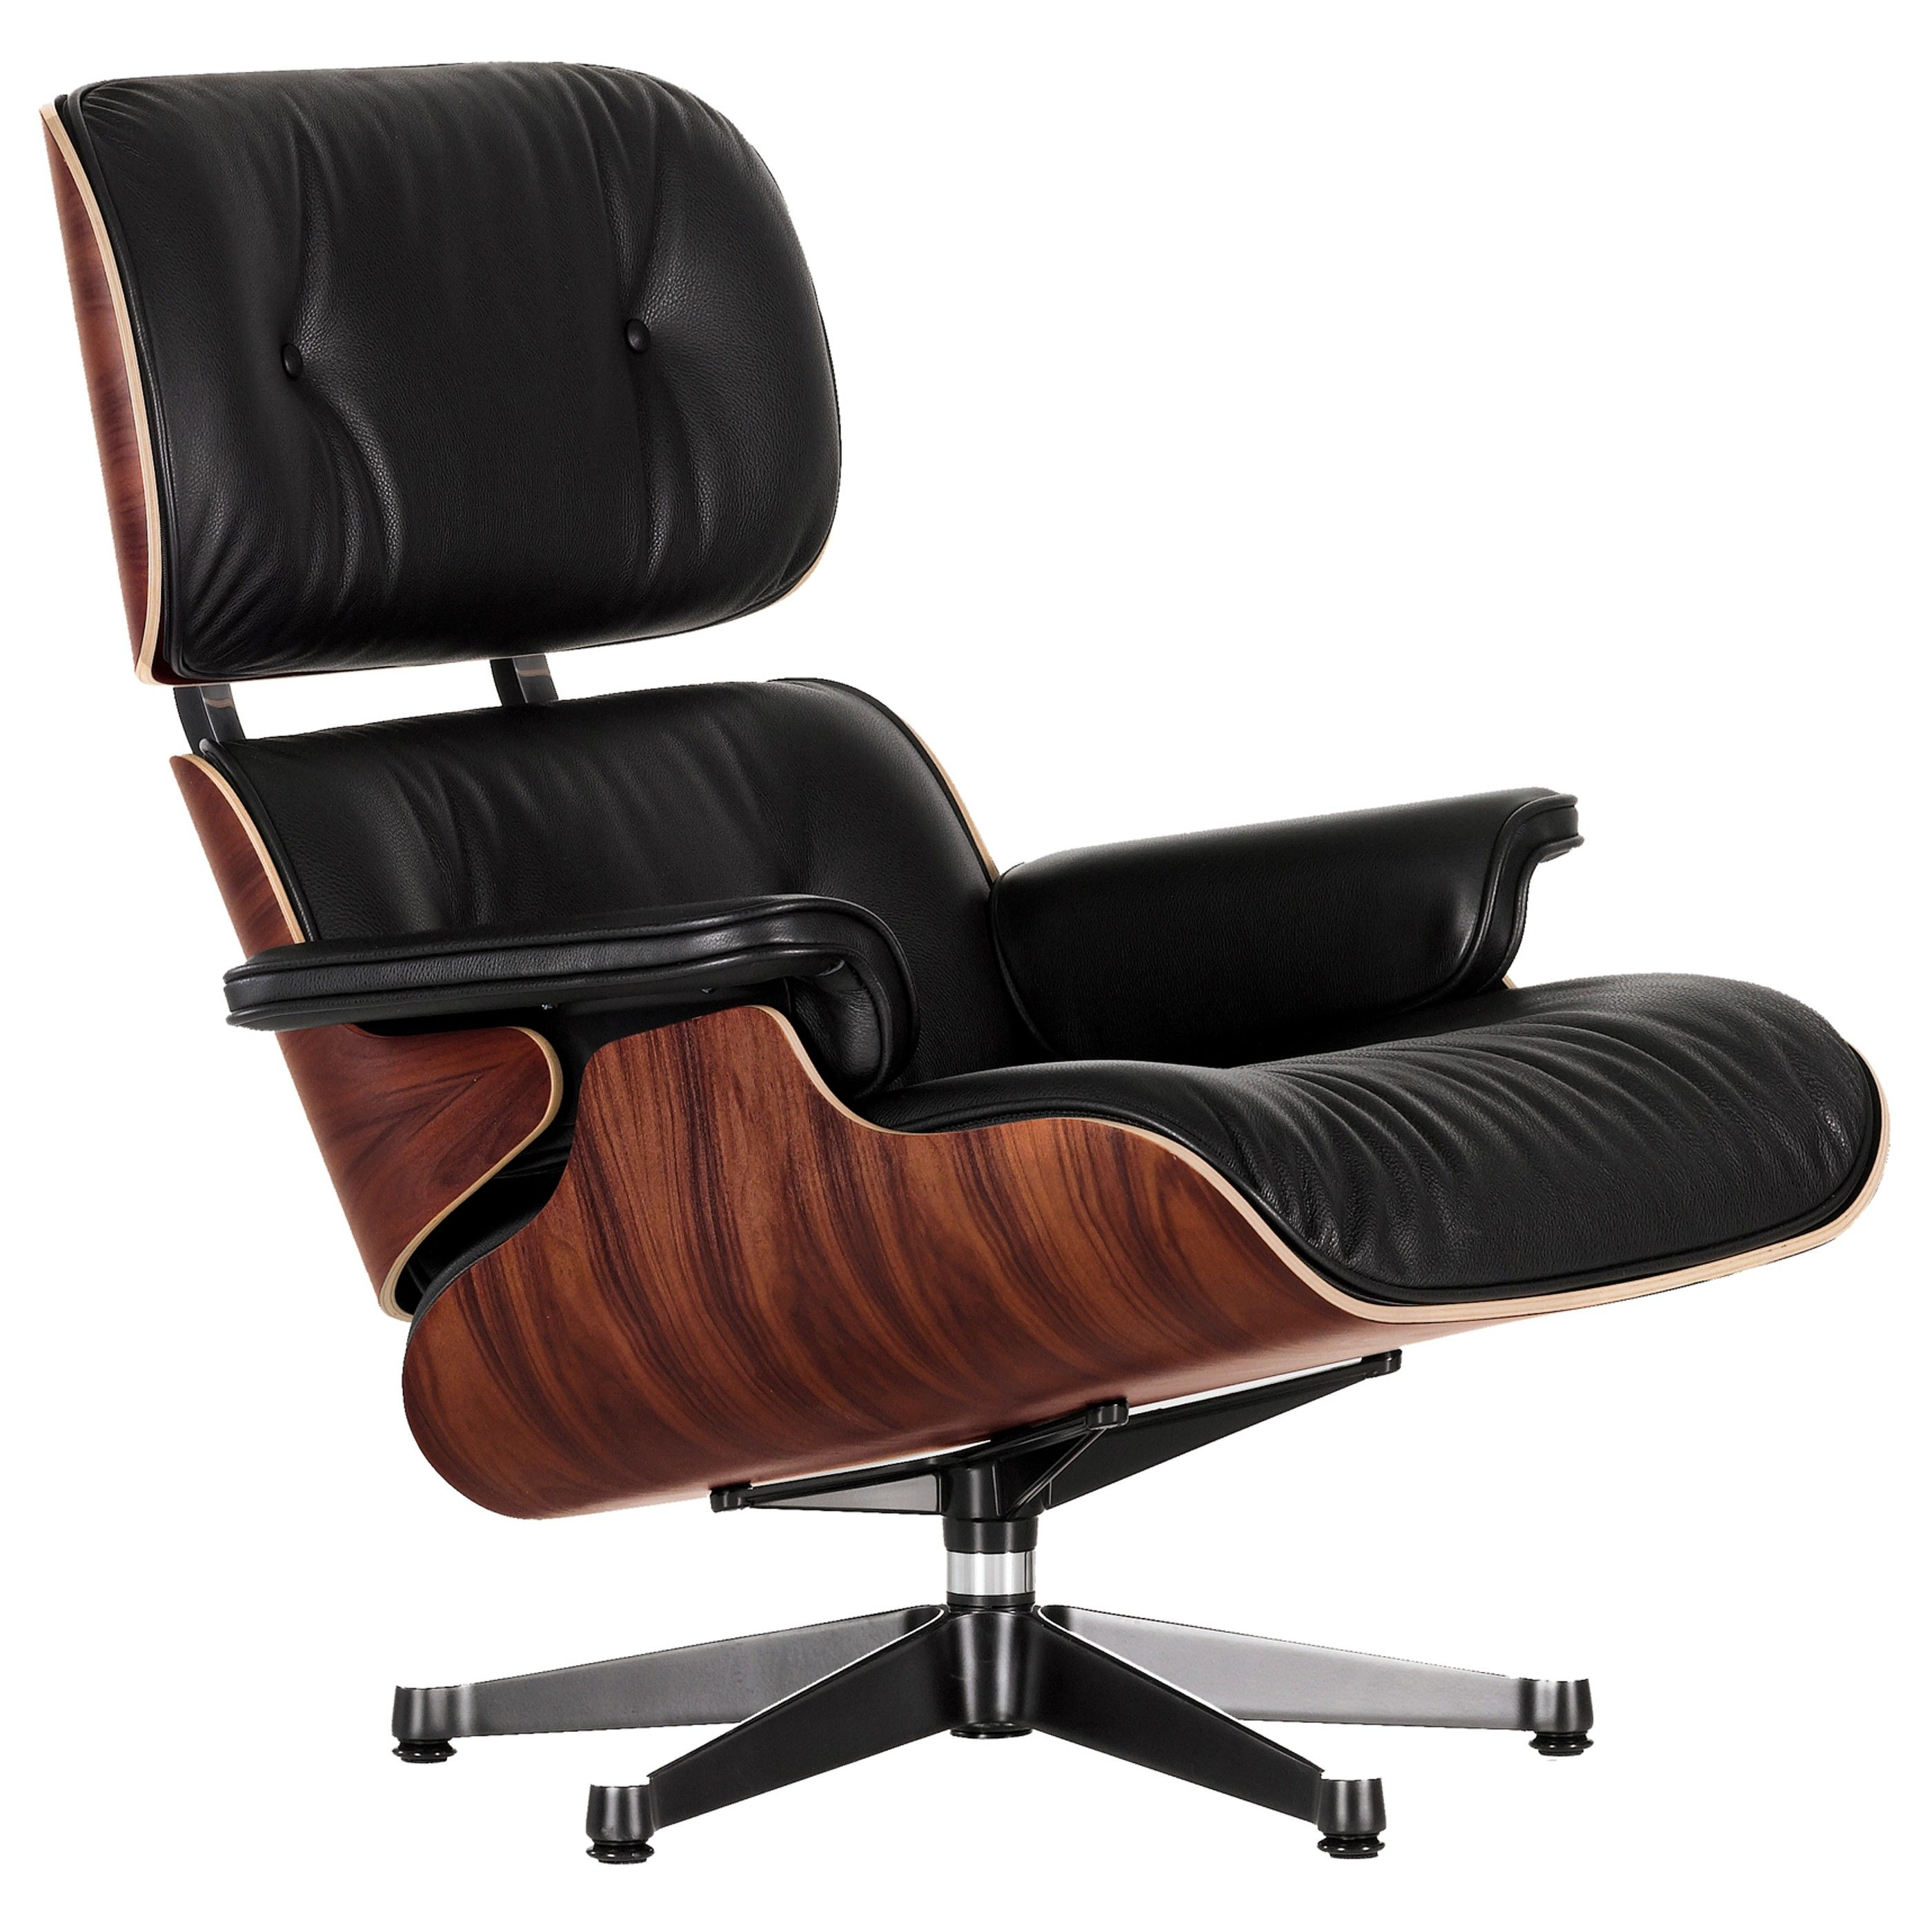 Chair Sessel Vitra Eames Lounge Chair Sessel Santos Palisander Flinders